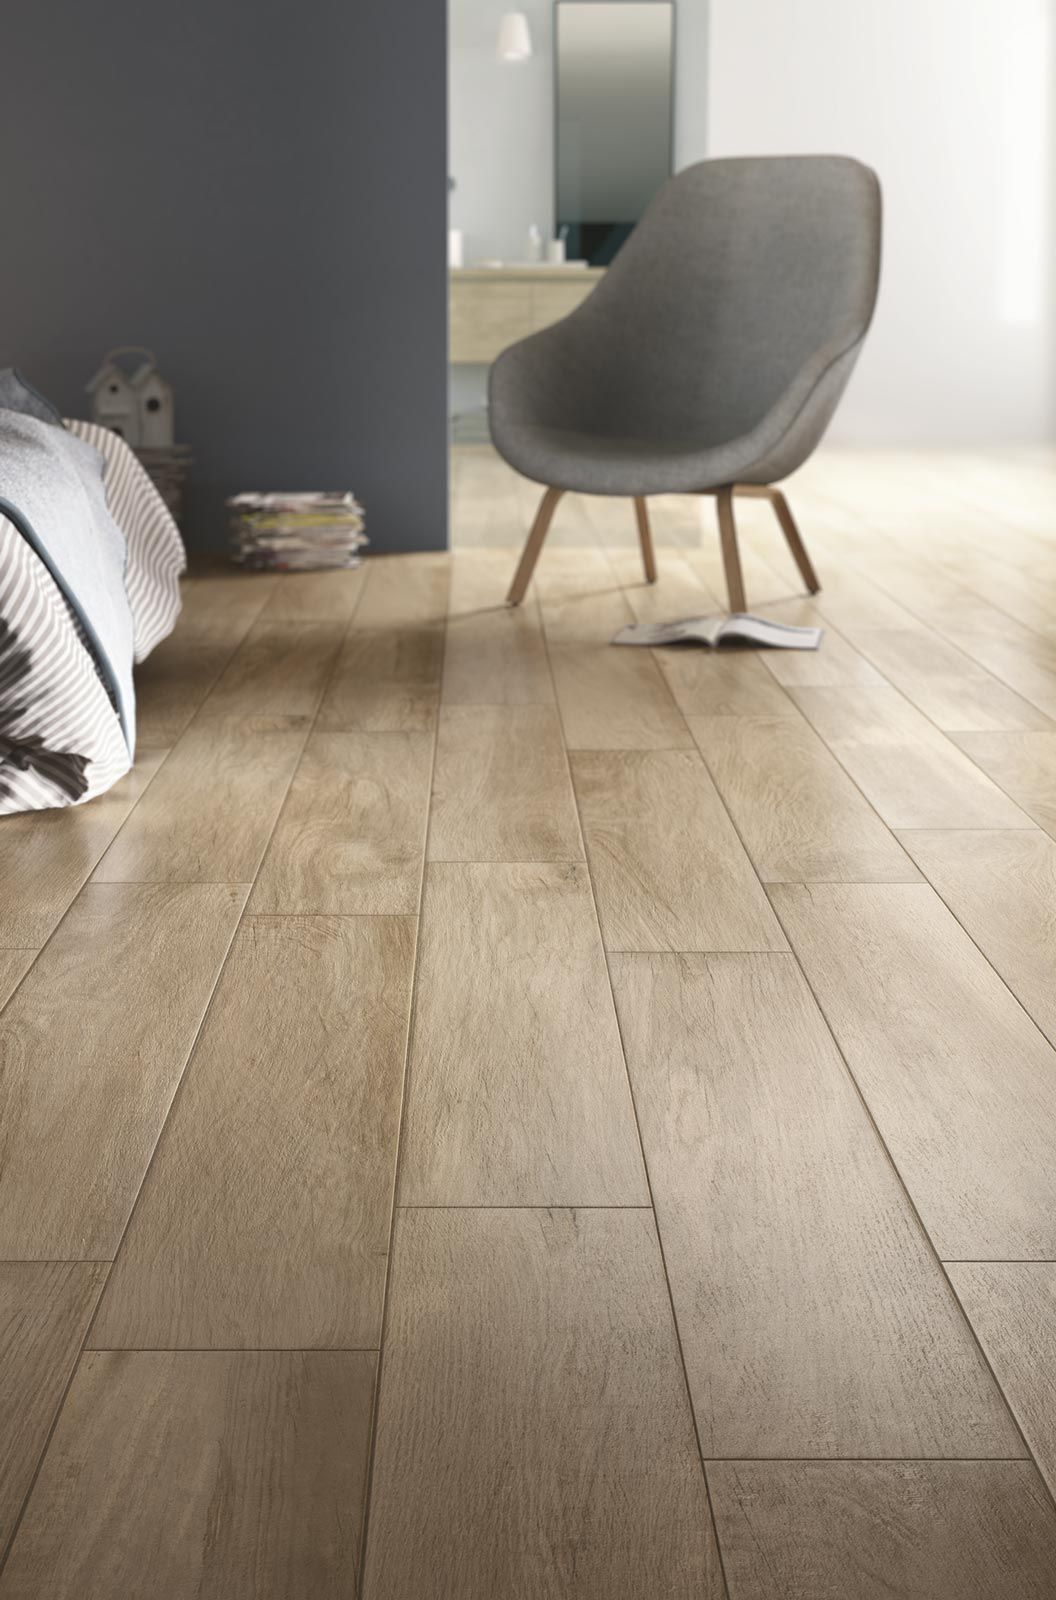 Ragno Woodplace Caramel 20x120 Cm R497 Wood Tile Bedroom Flooring Flooring